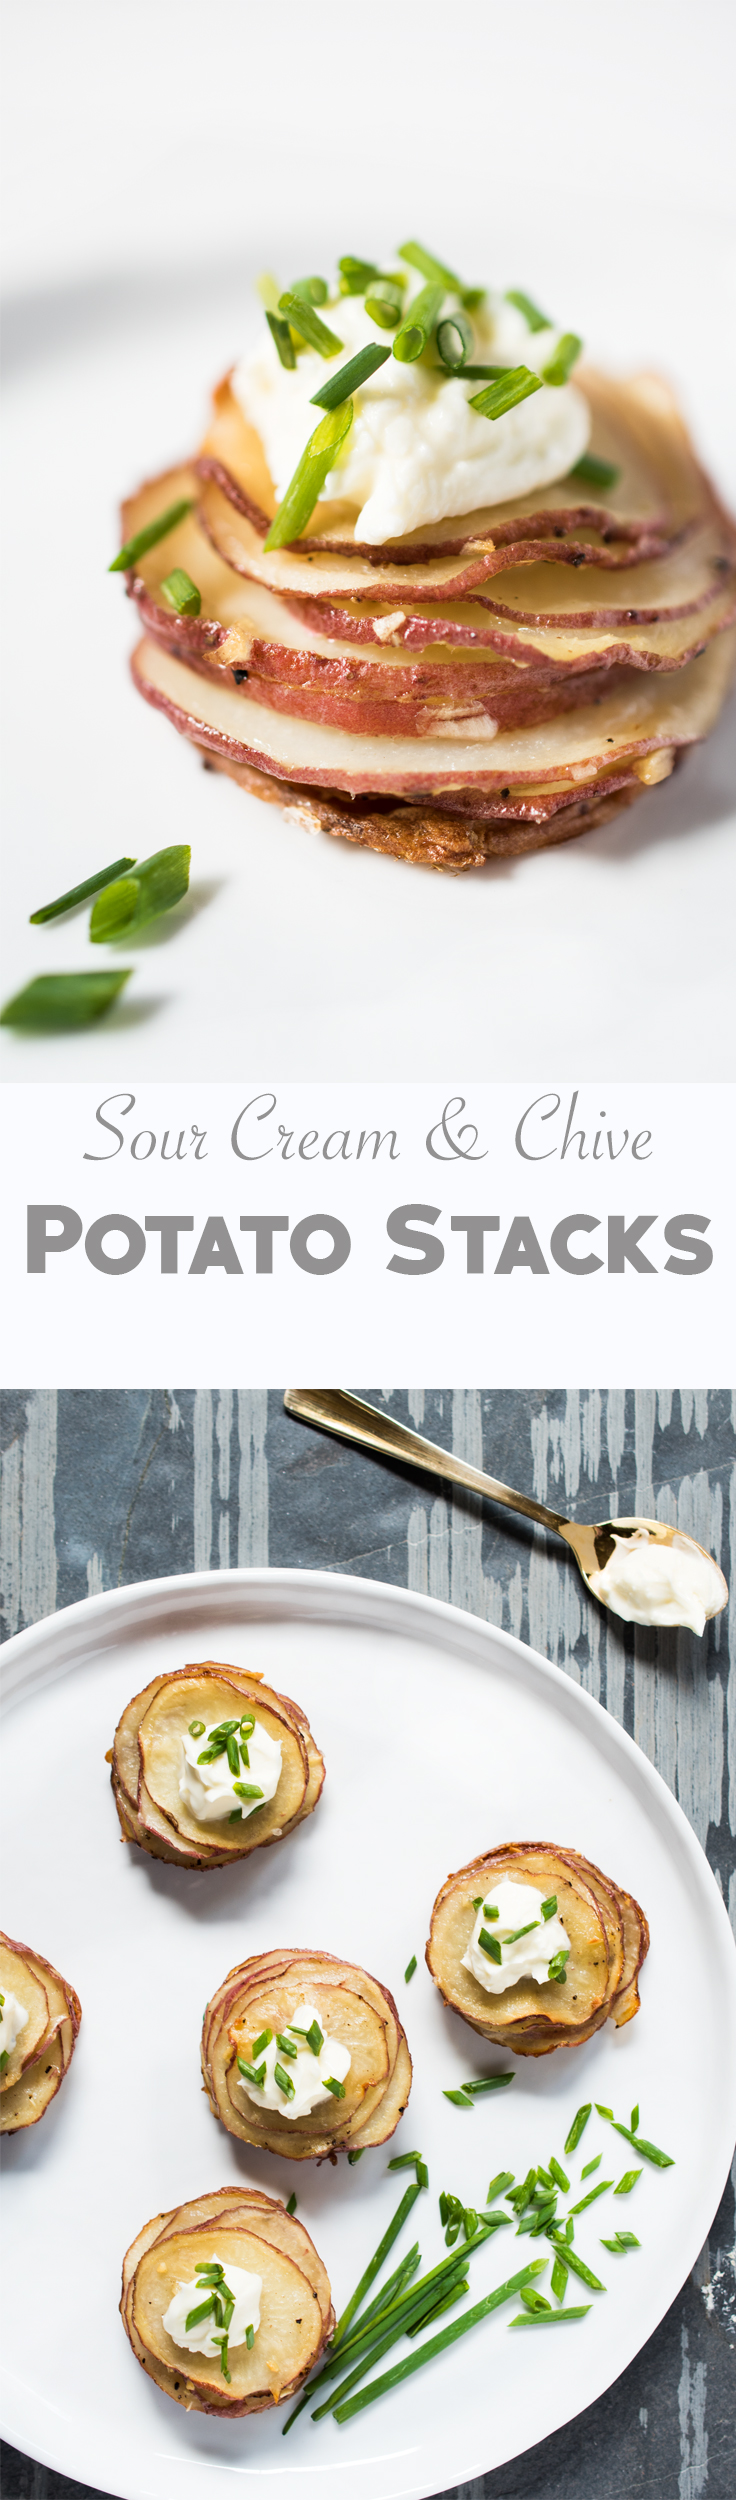 These Sour Cream and Chive Potato Stacks make an elegant presentation but they're so easy to prepare.